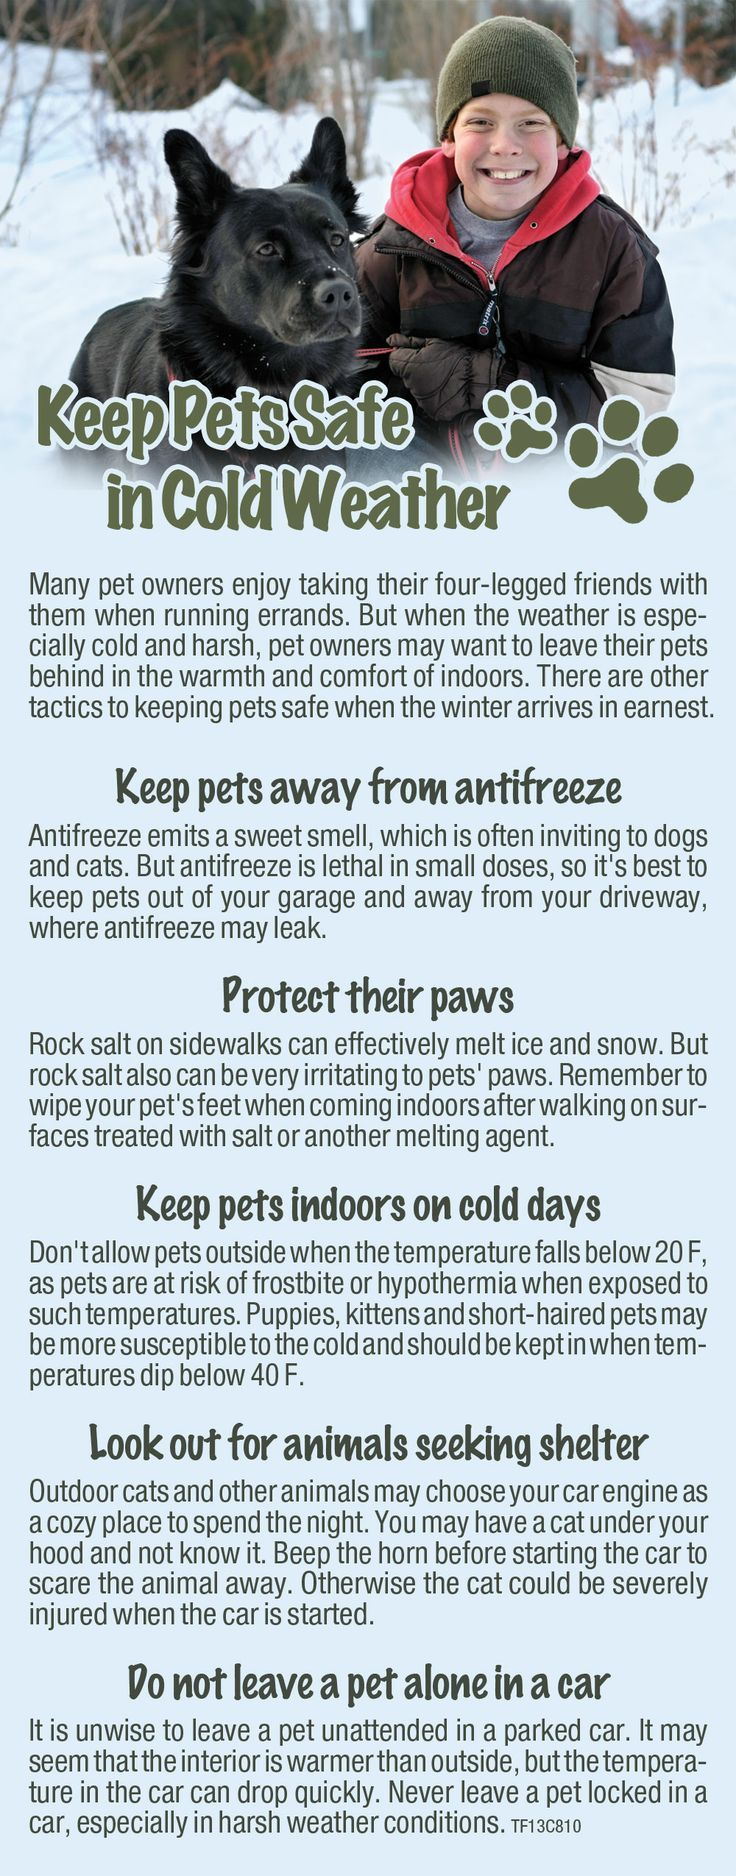 Don't about Pets in this cold weather outbreak